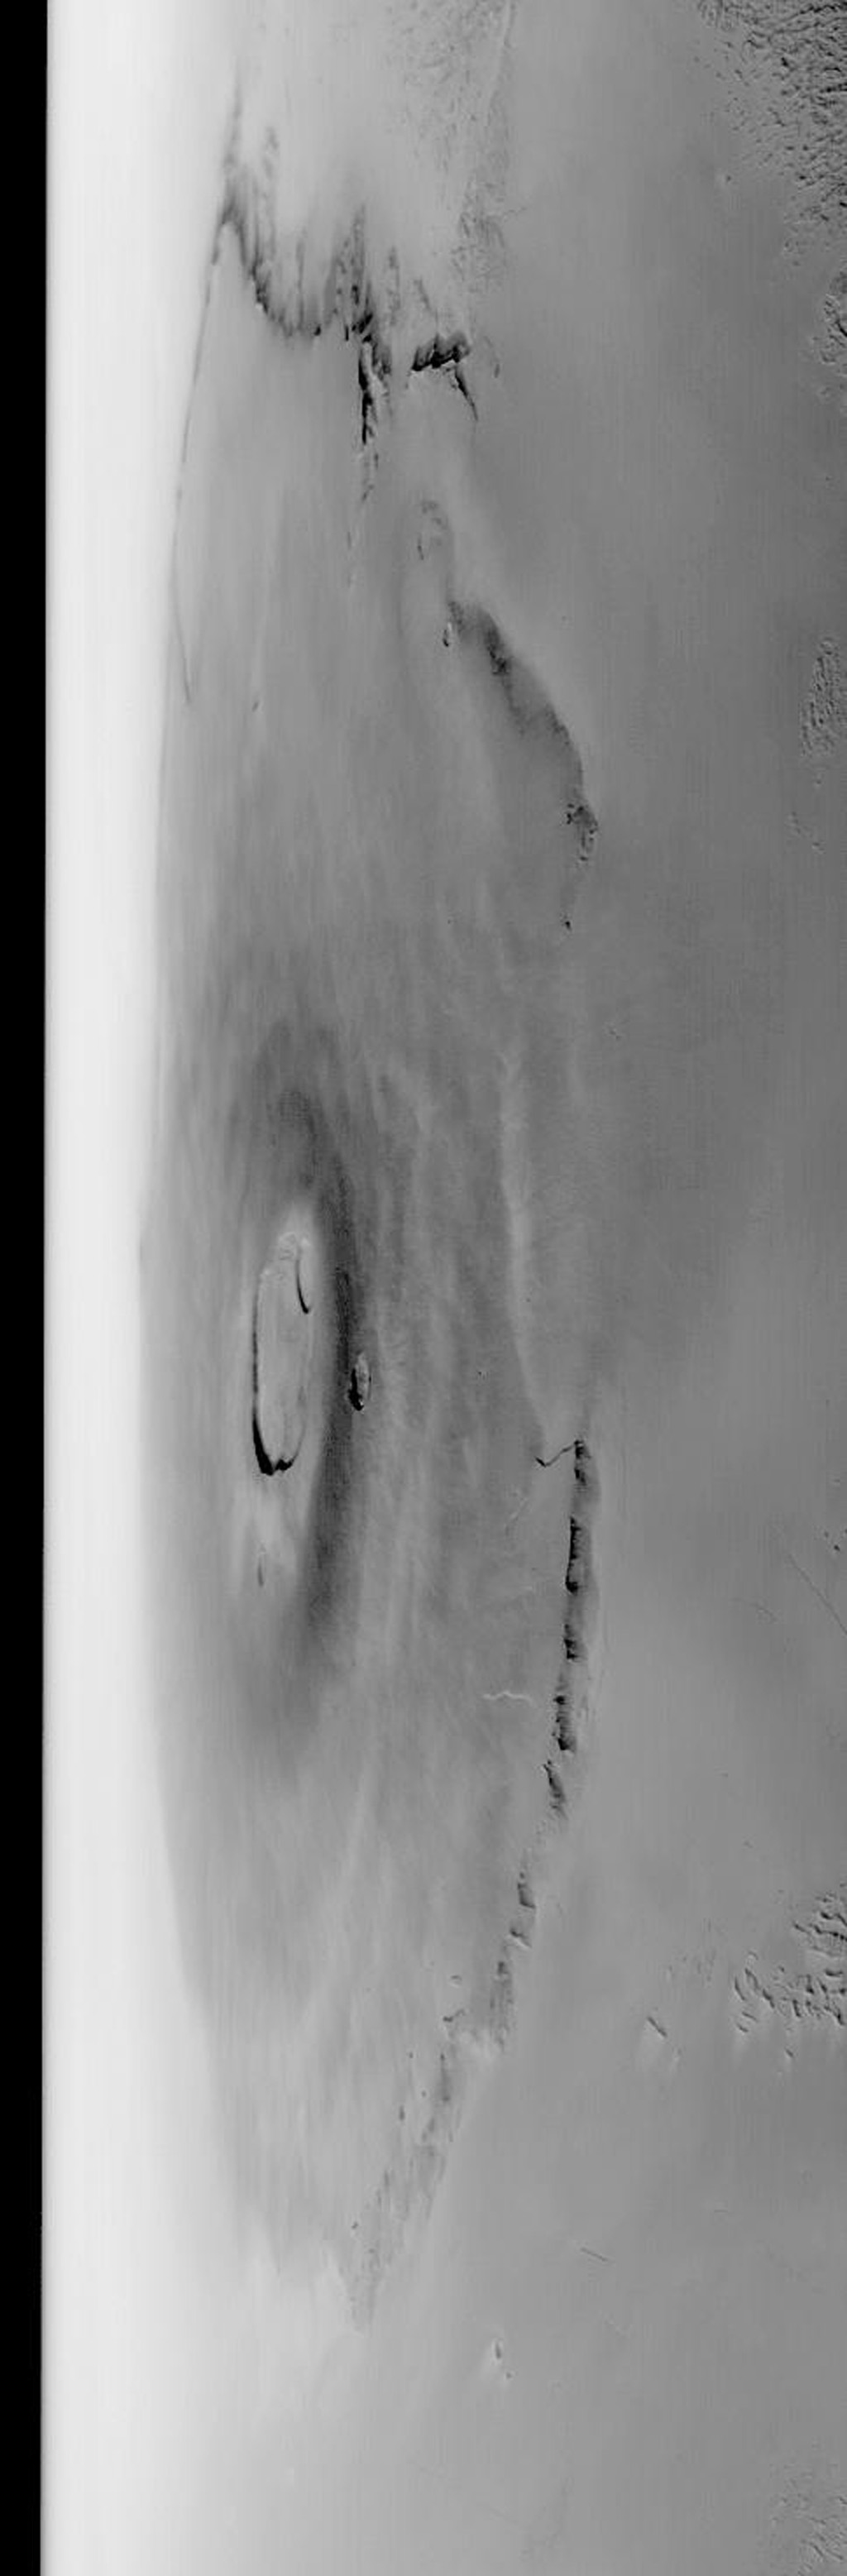 NASA's Mars Global Surveyor shows a wide angle view of the giant martian volcano, Olympus Mons.